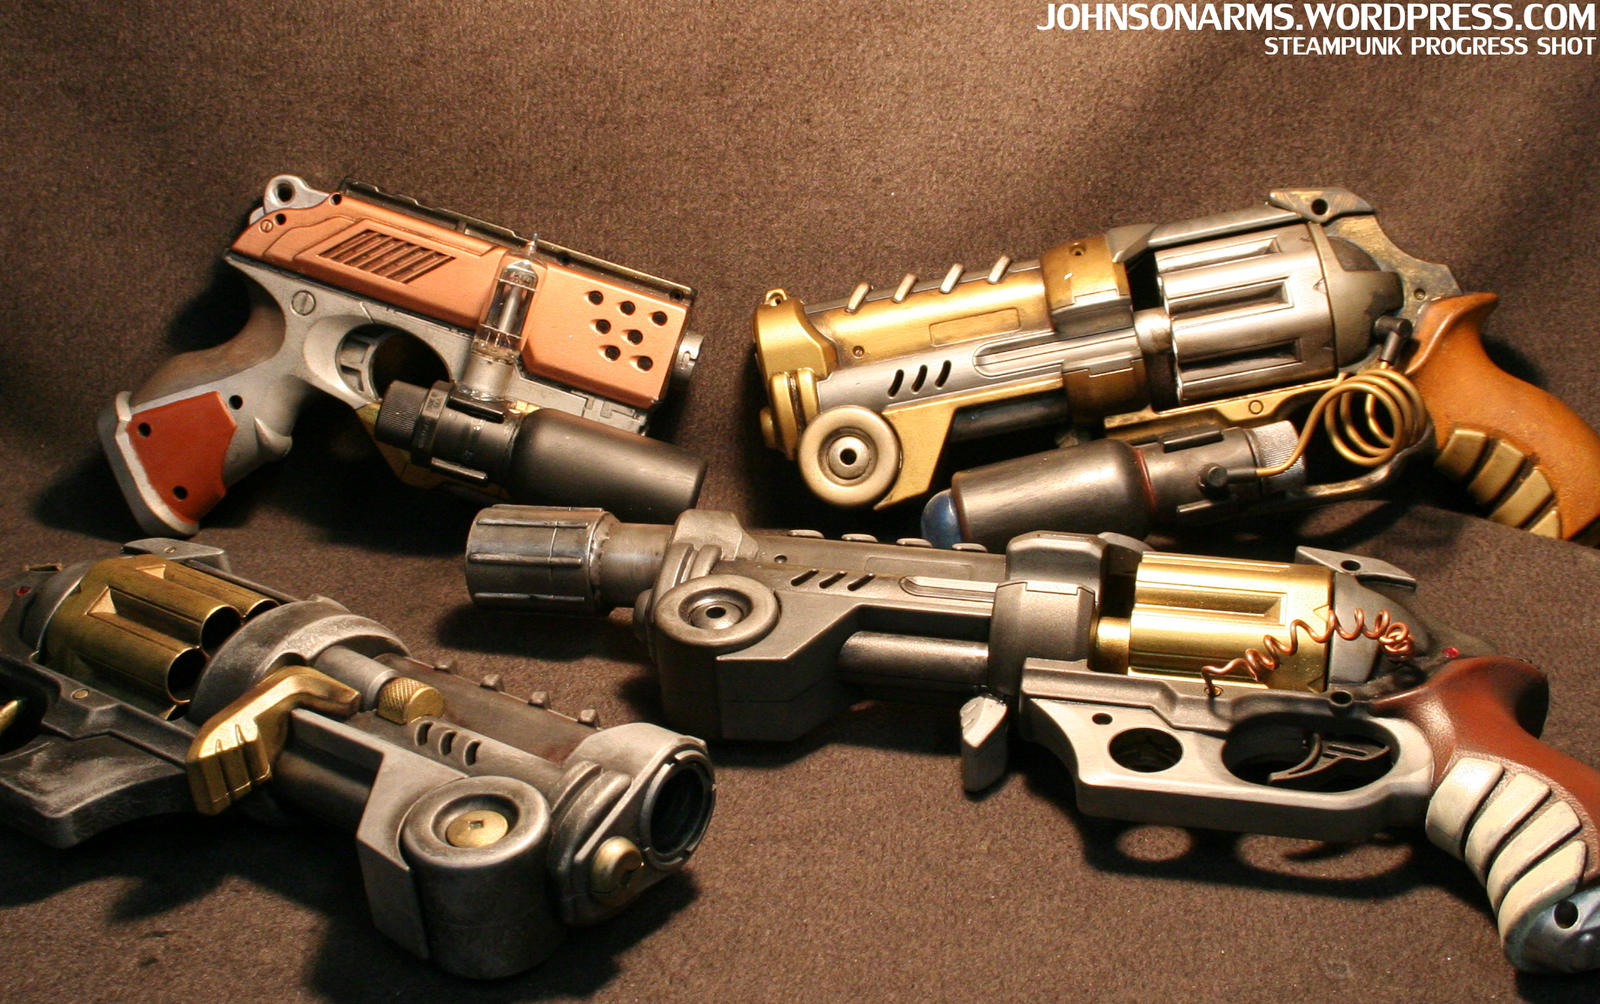 Steampunk Pistols Galore by JohnsonArms